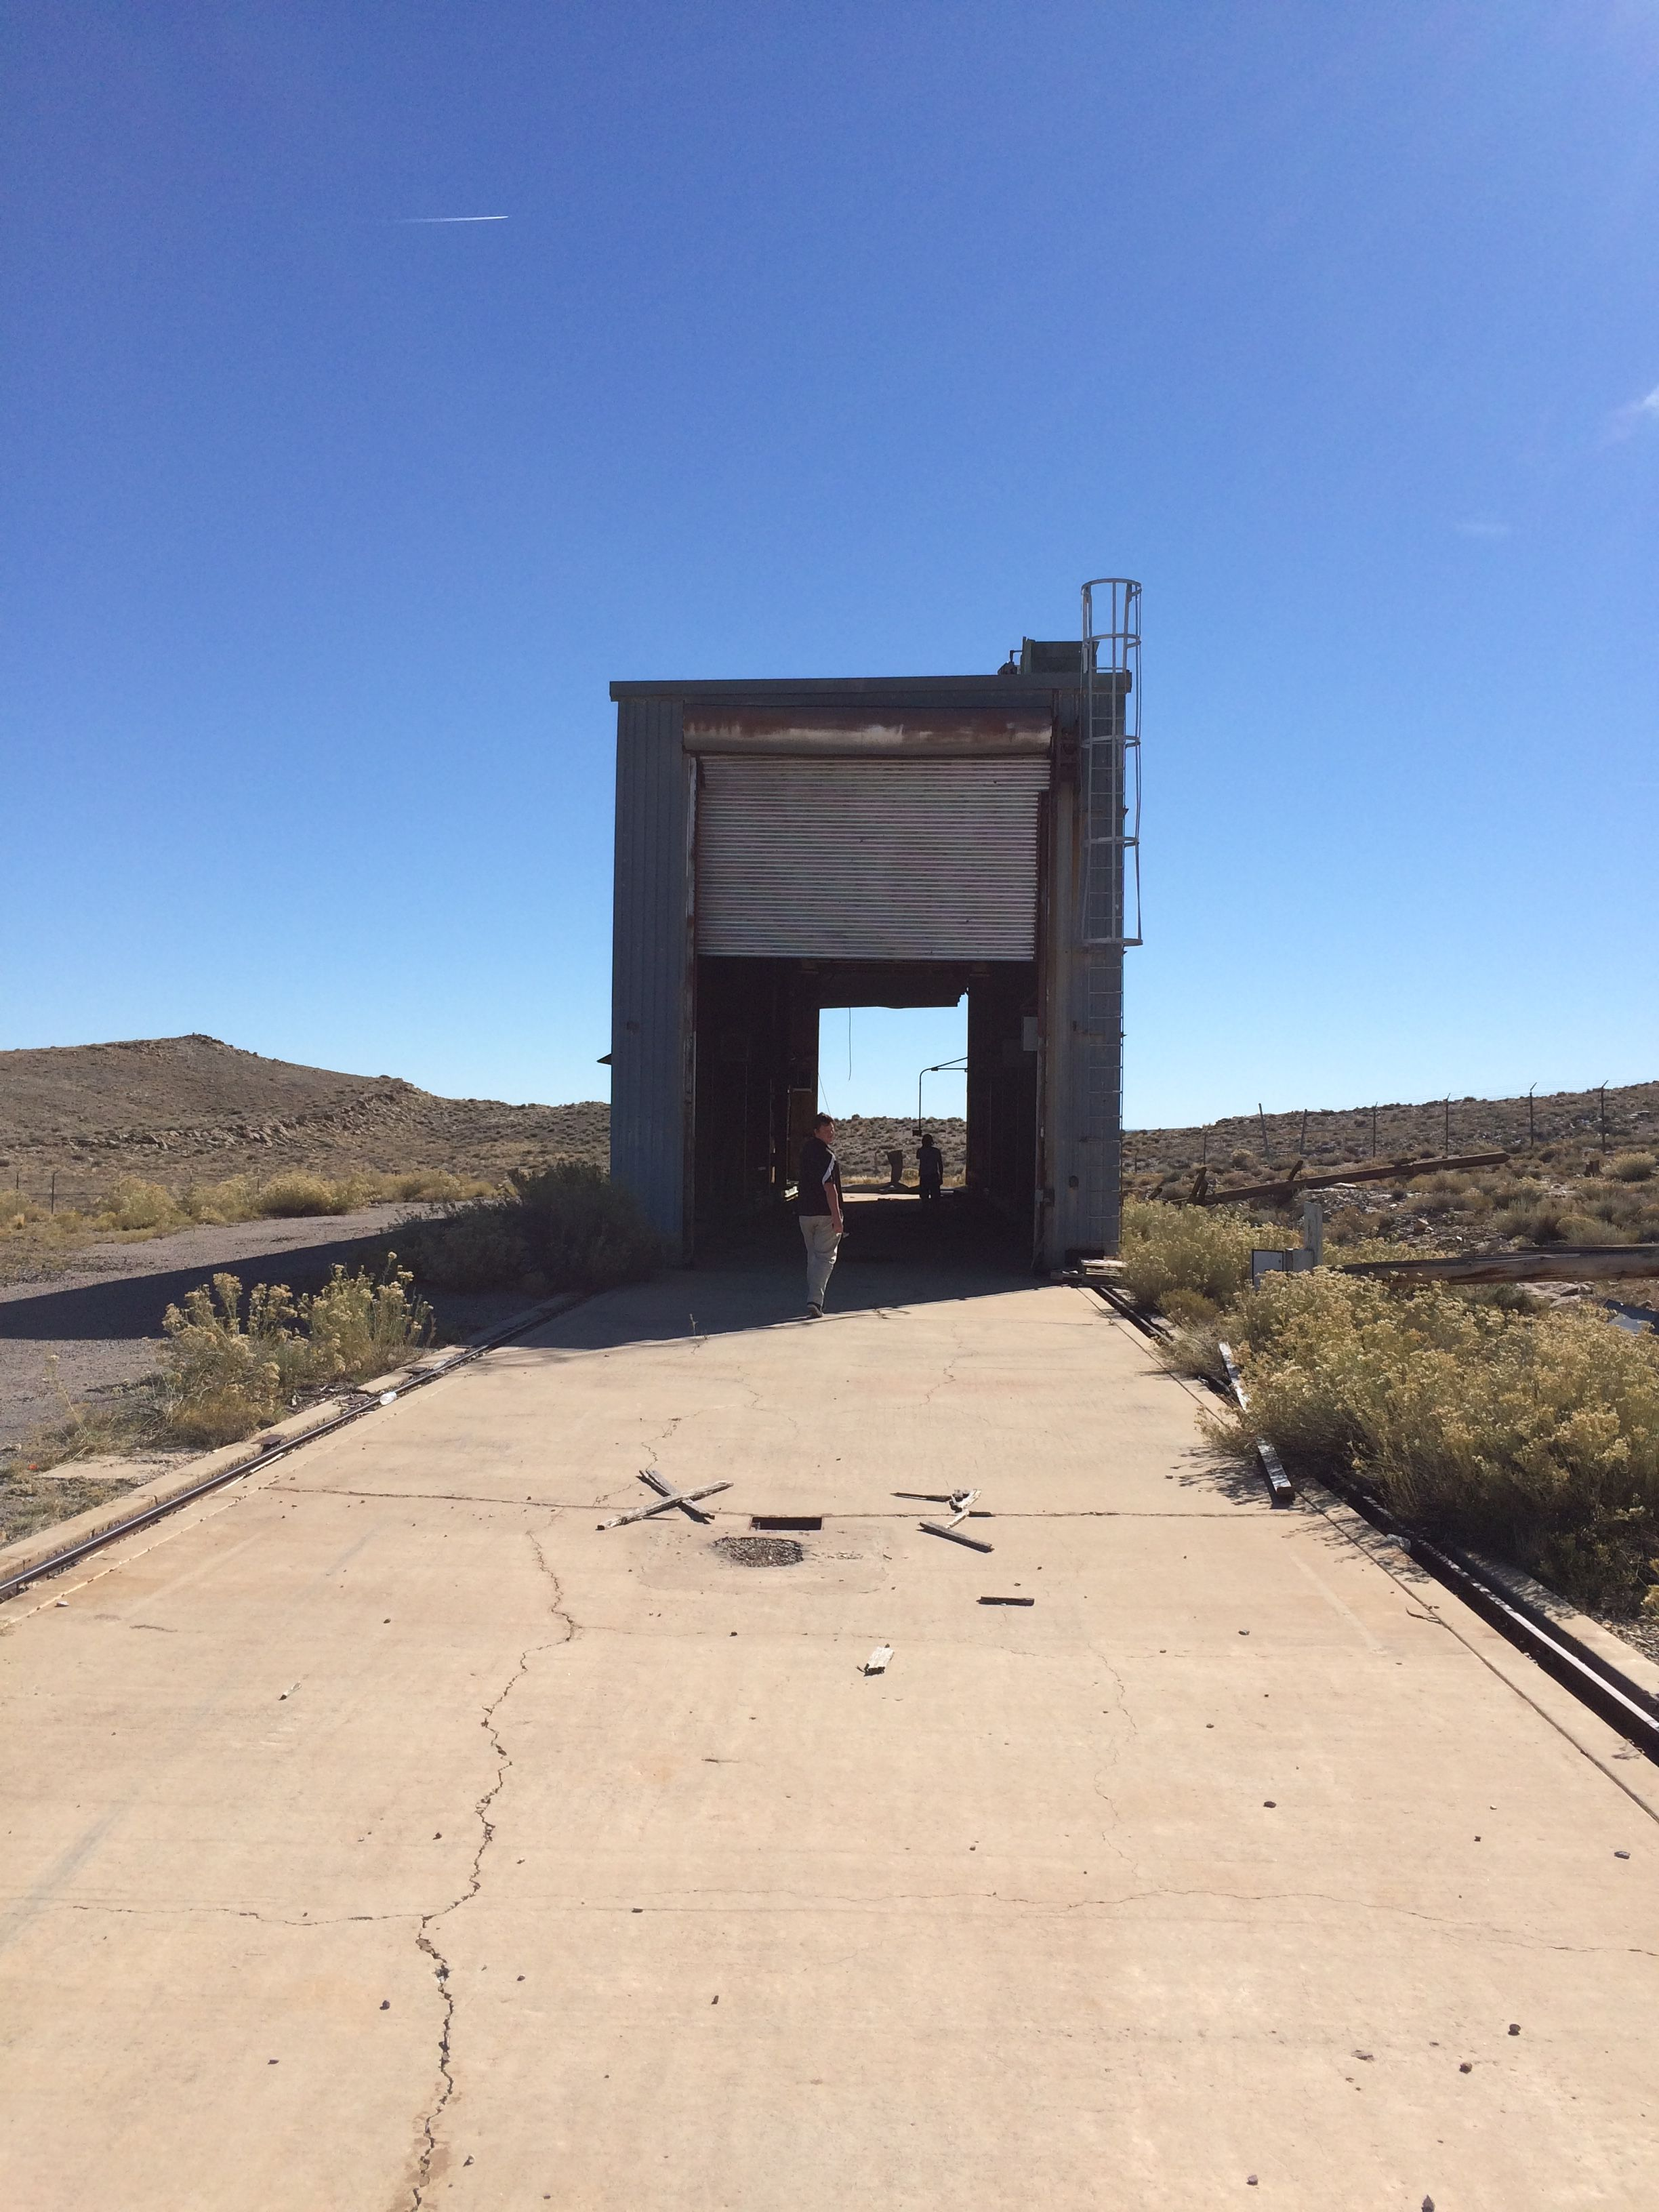 Decommissioned Missile Base Properties For Sale Green River Missile Base Afb Abandoned Abandoned Military Bases